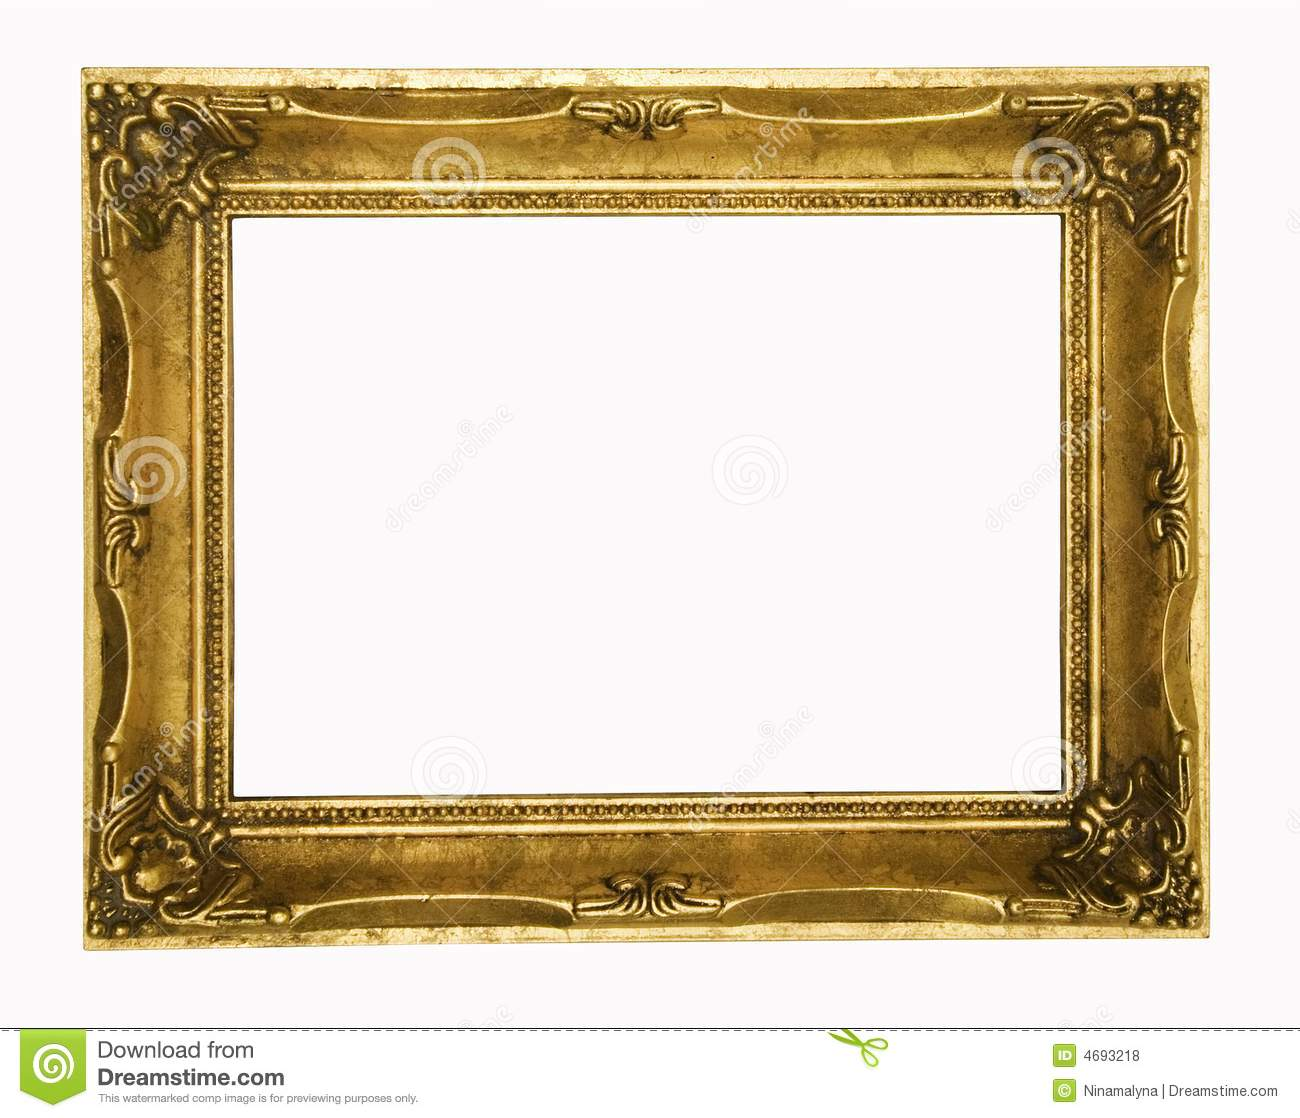 Vintage gold ornate picture frame